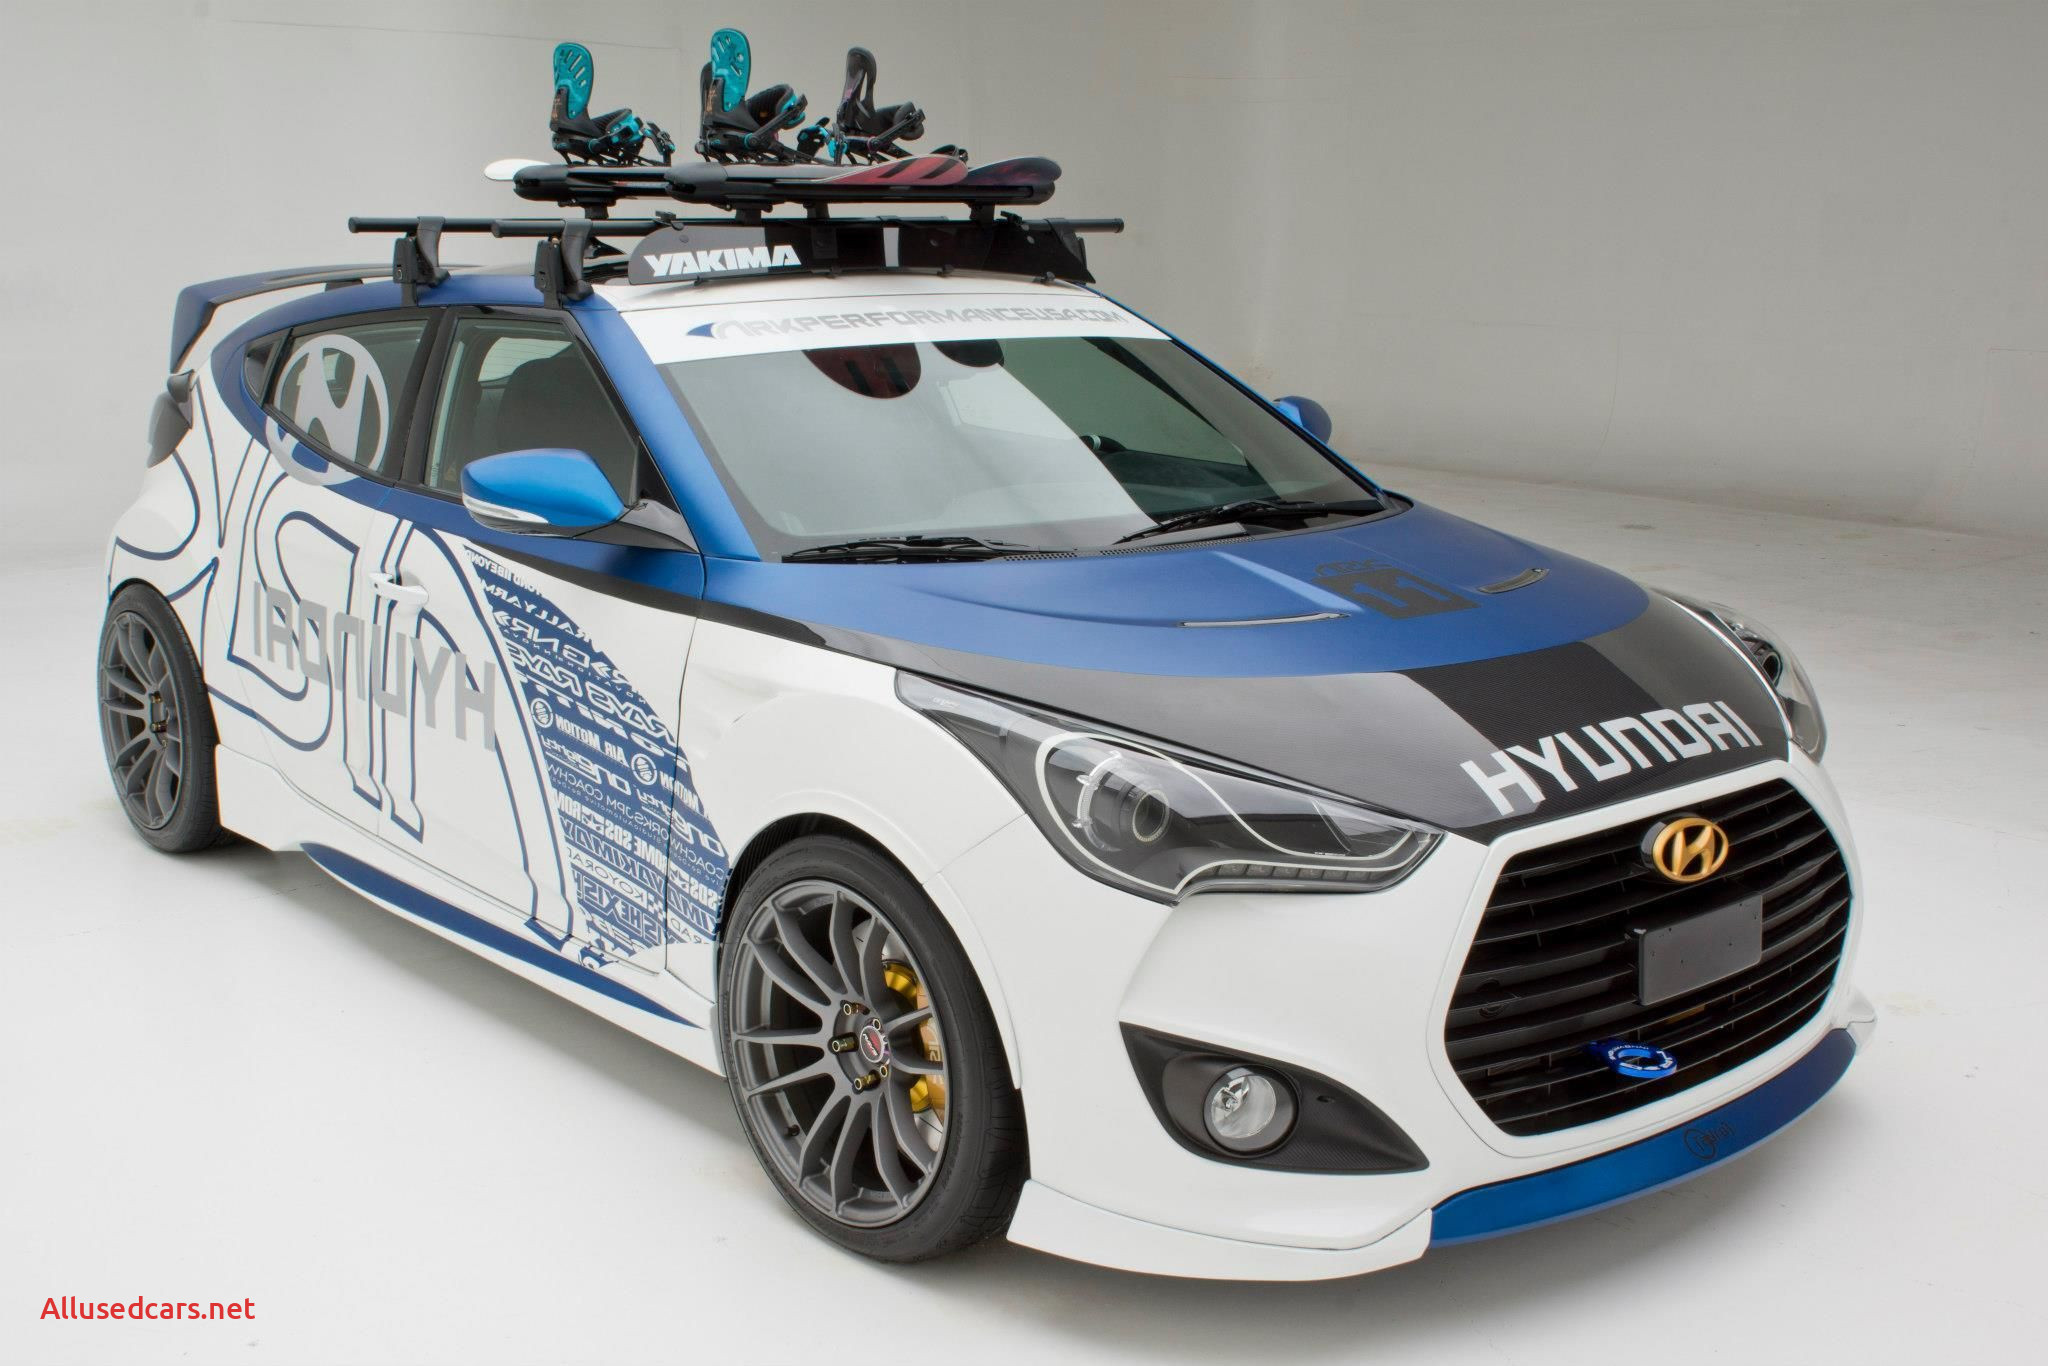 2016 Hyundai Veloster Inspirational 2012 Veloster Turbo Alpine Edition by Ark Performance Inc